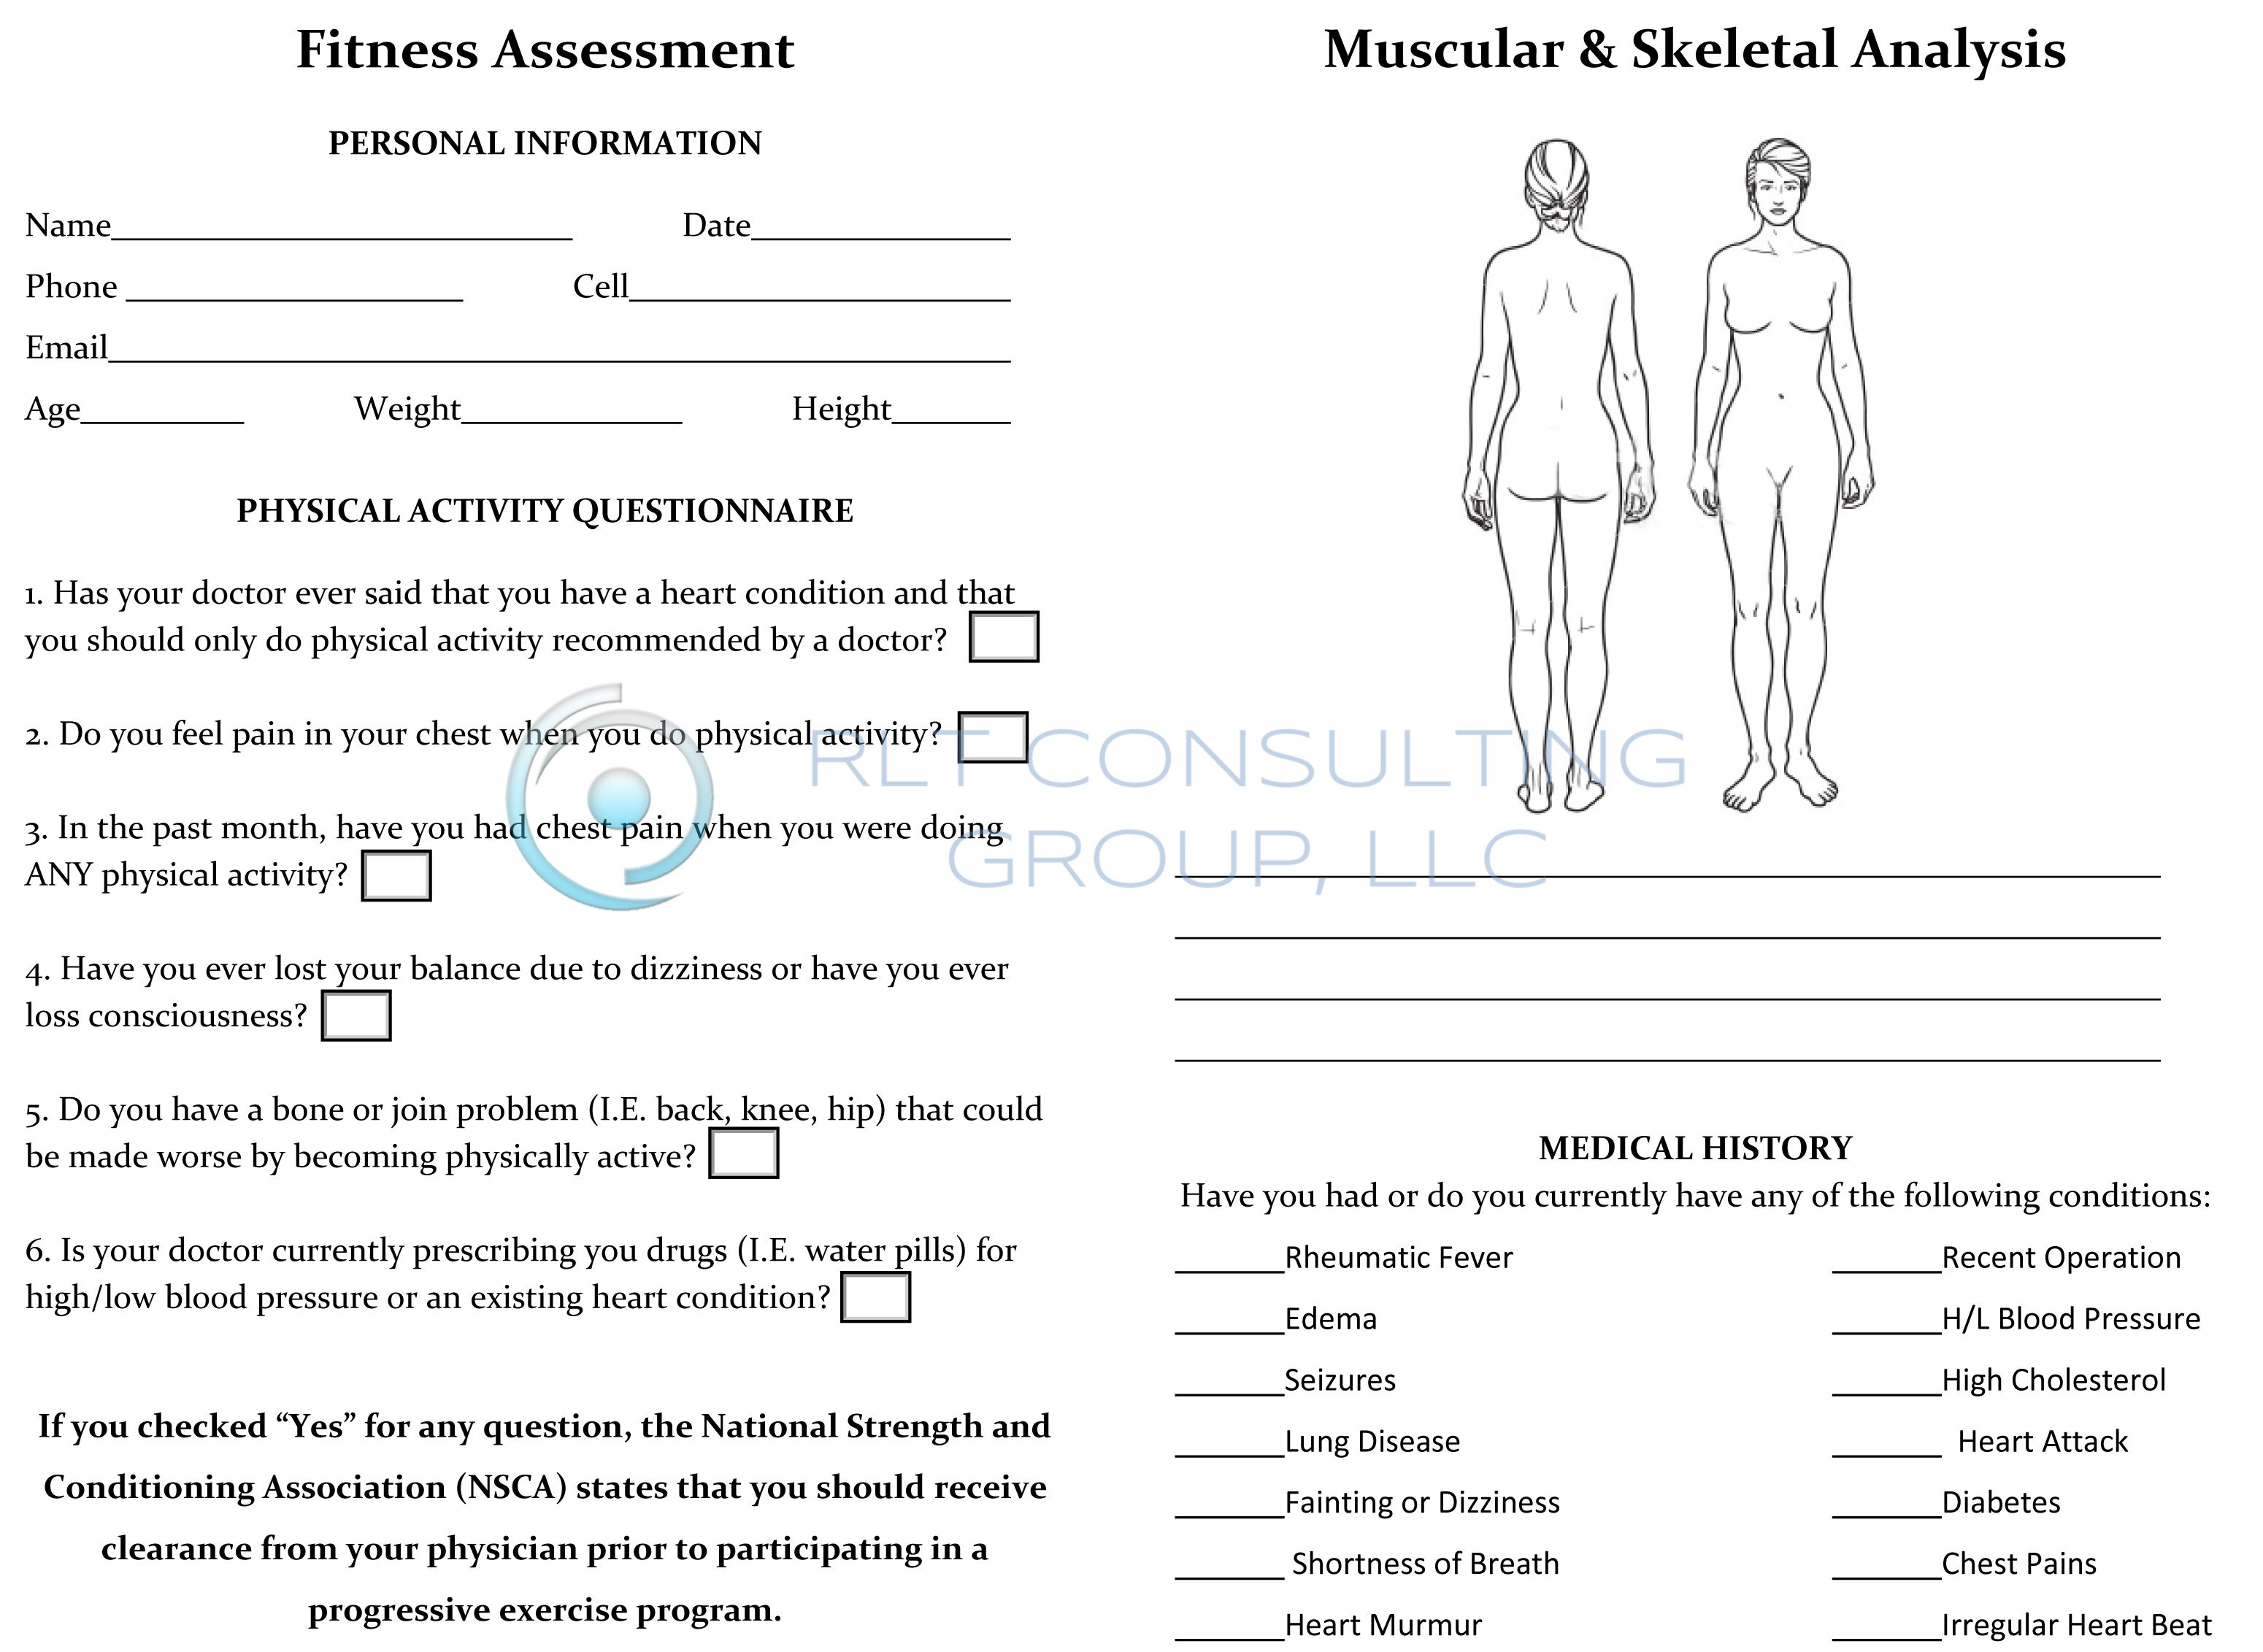 Fitness Assessment Form for Women (front) by RLT